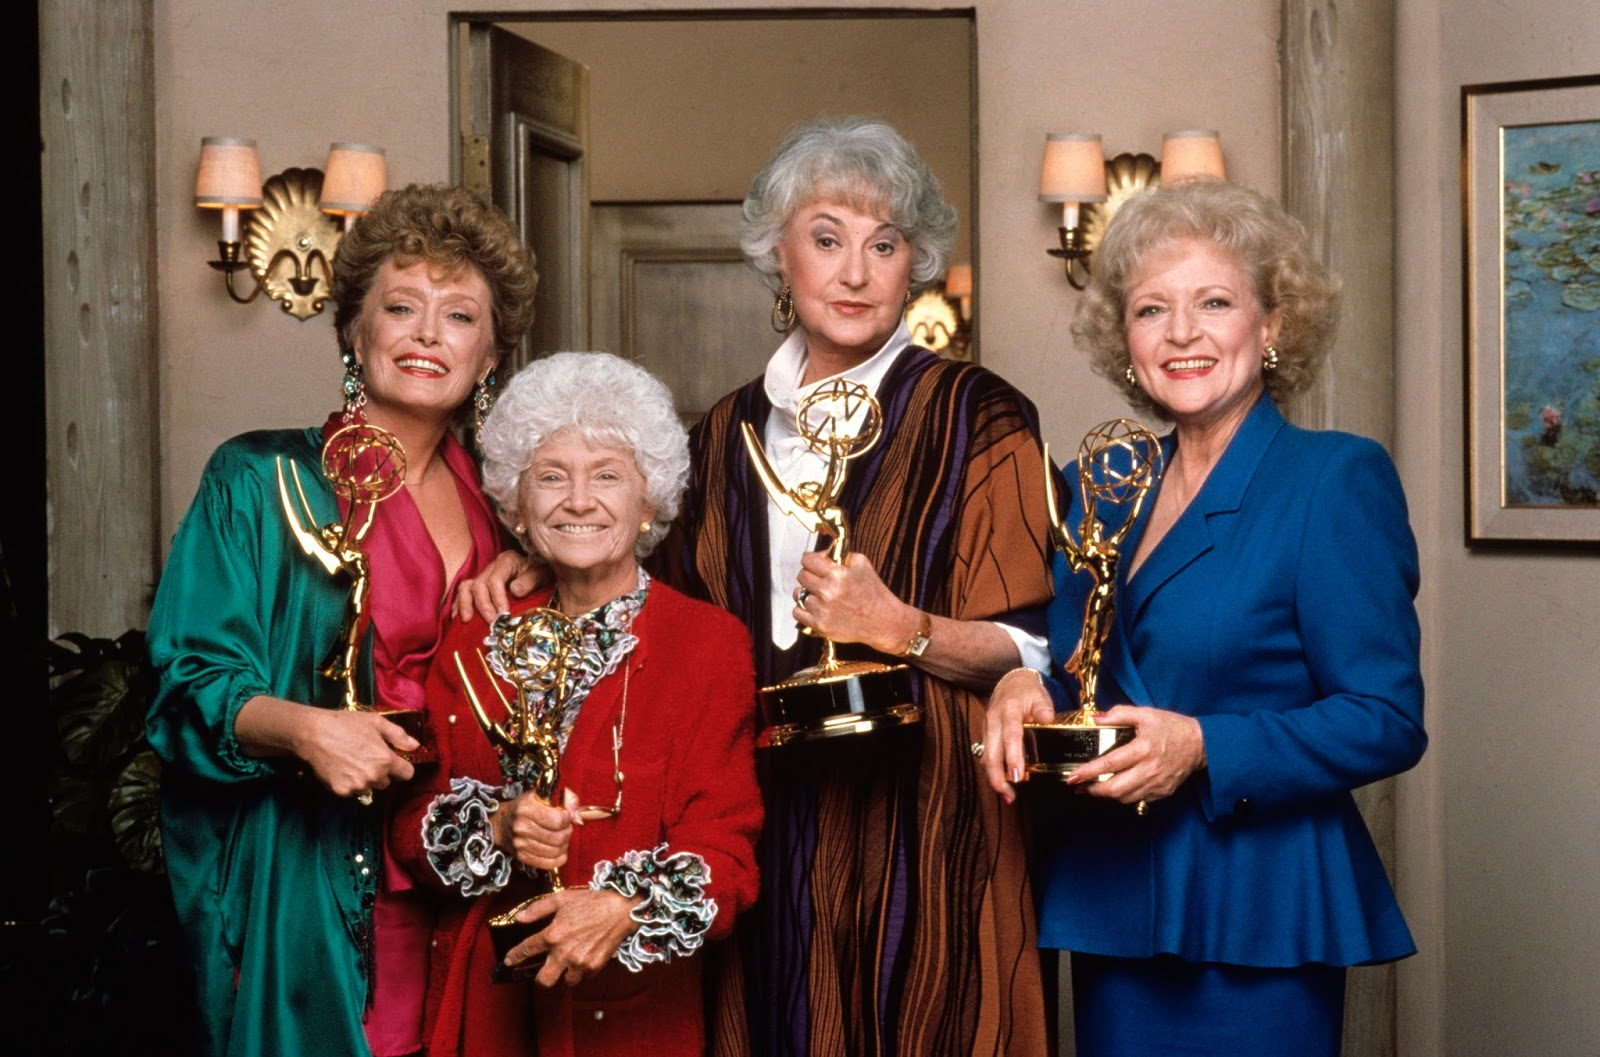 Rue McClanahan, Estelle Getty, Bea Arthur y Betty White cada una con su Emmy por Las Chicas de Oro